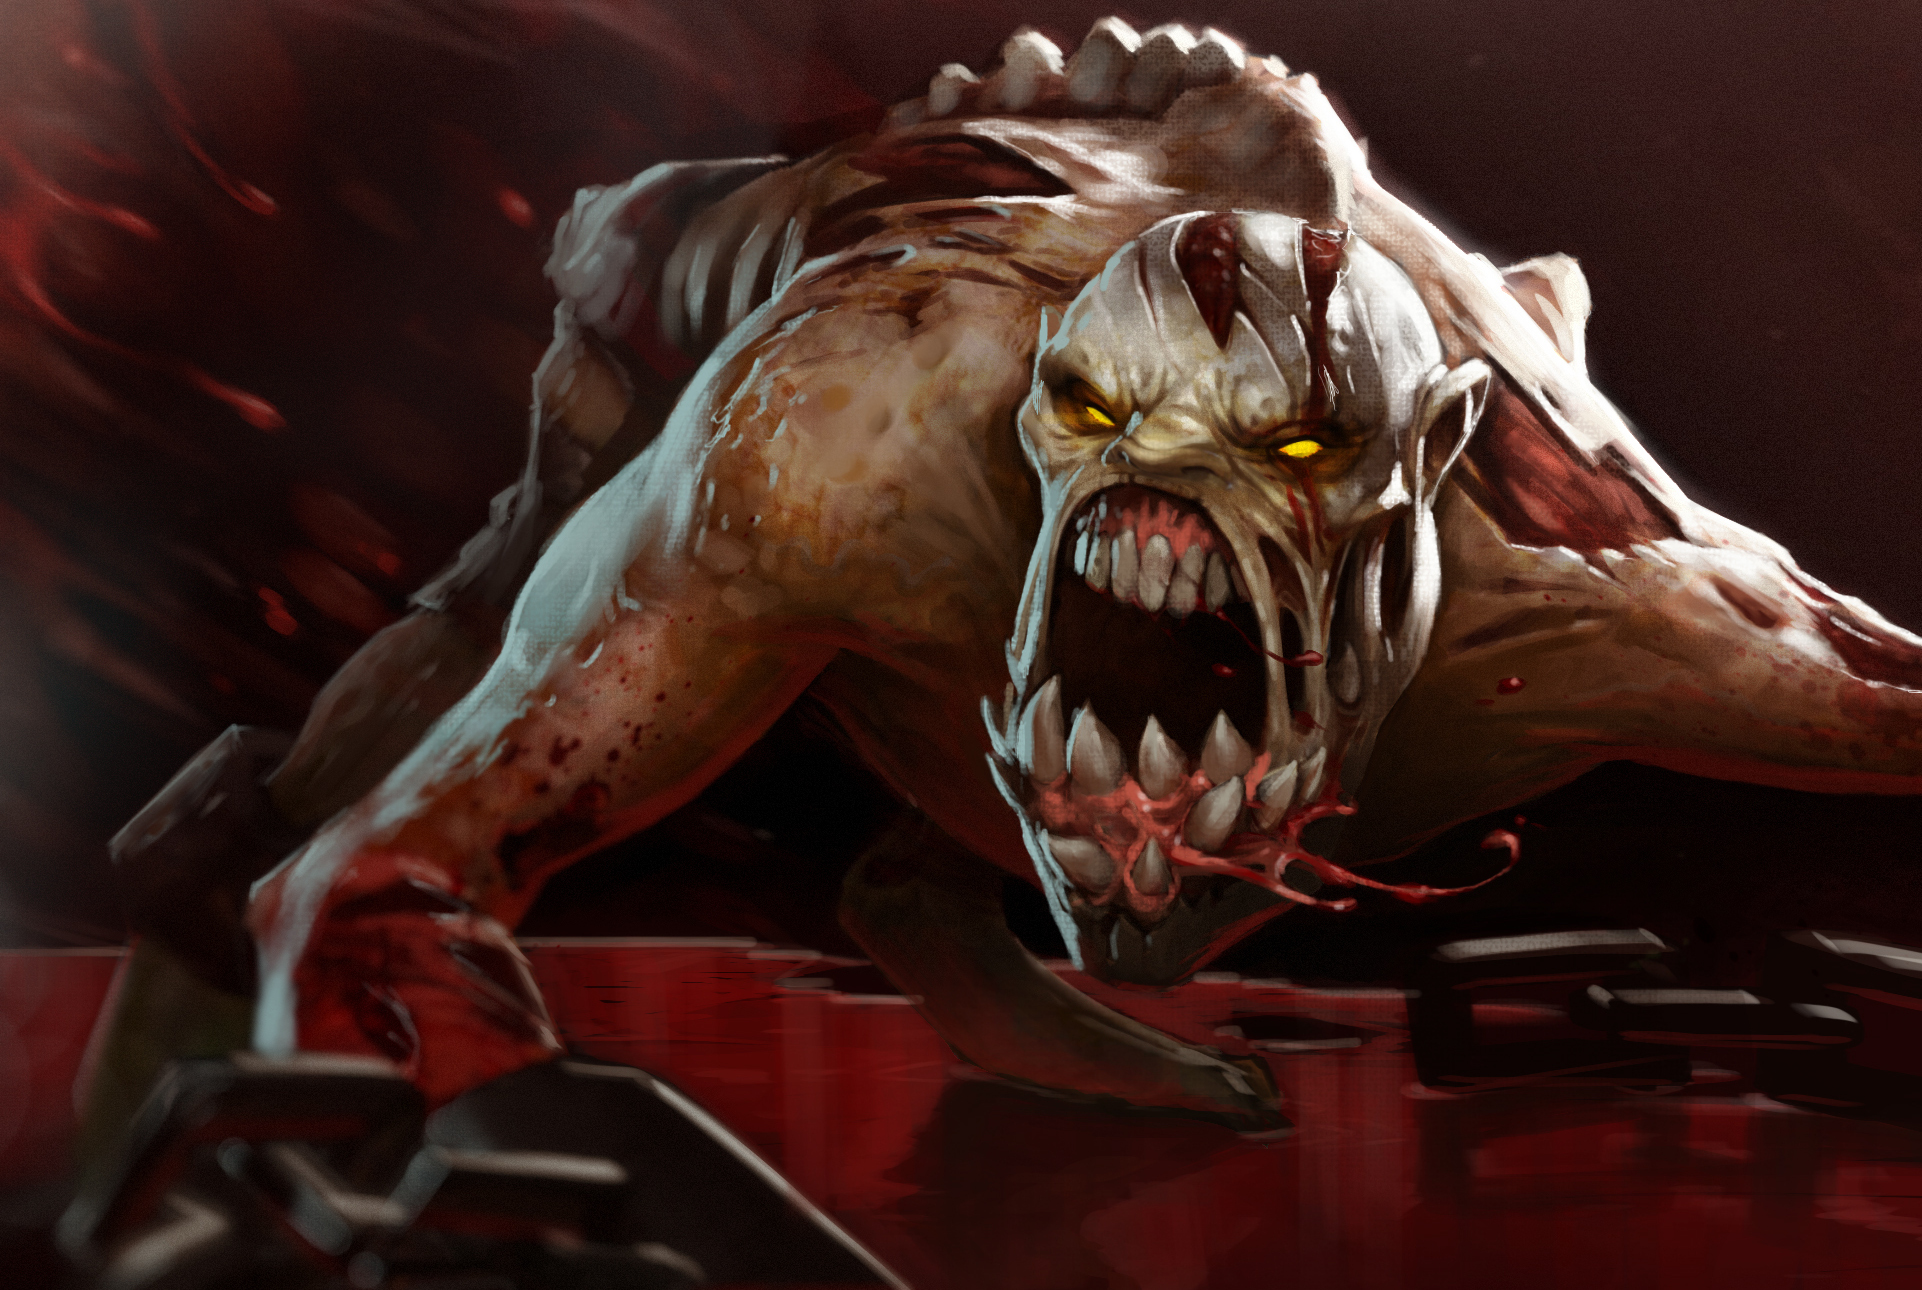 Alchemist, Lifestealer nerfed in latest Dota 2 patch | Dot